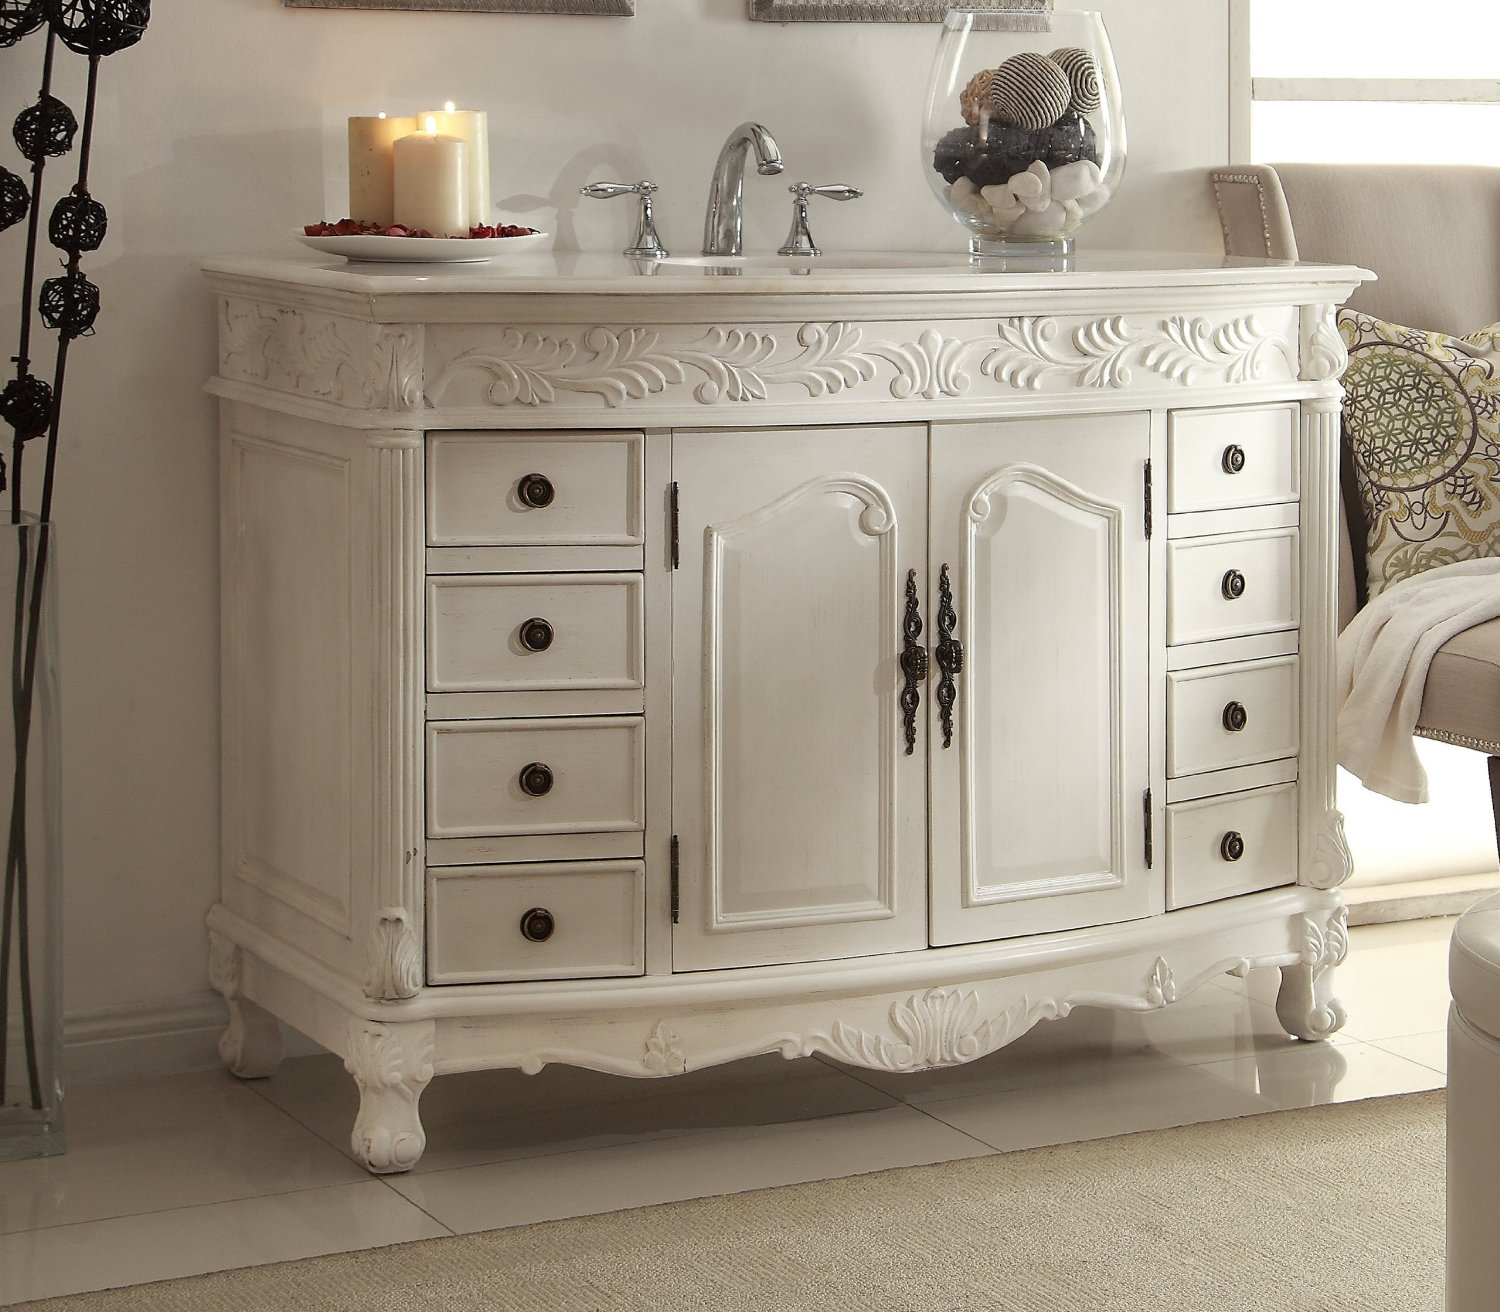 Adelina Inch Antique White Bathroom Vanity White Marble Top